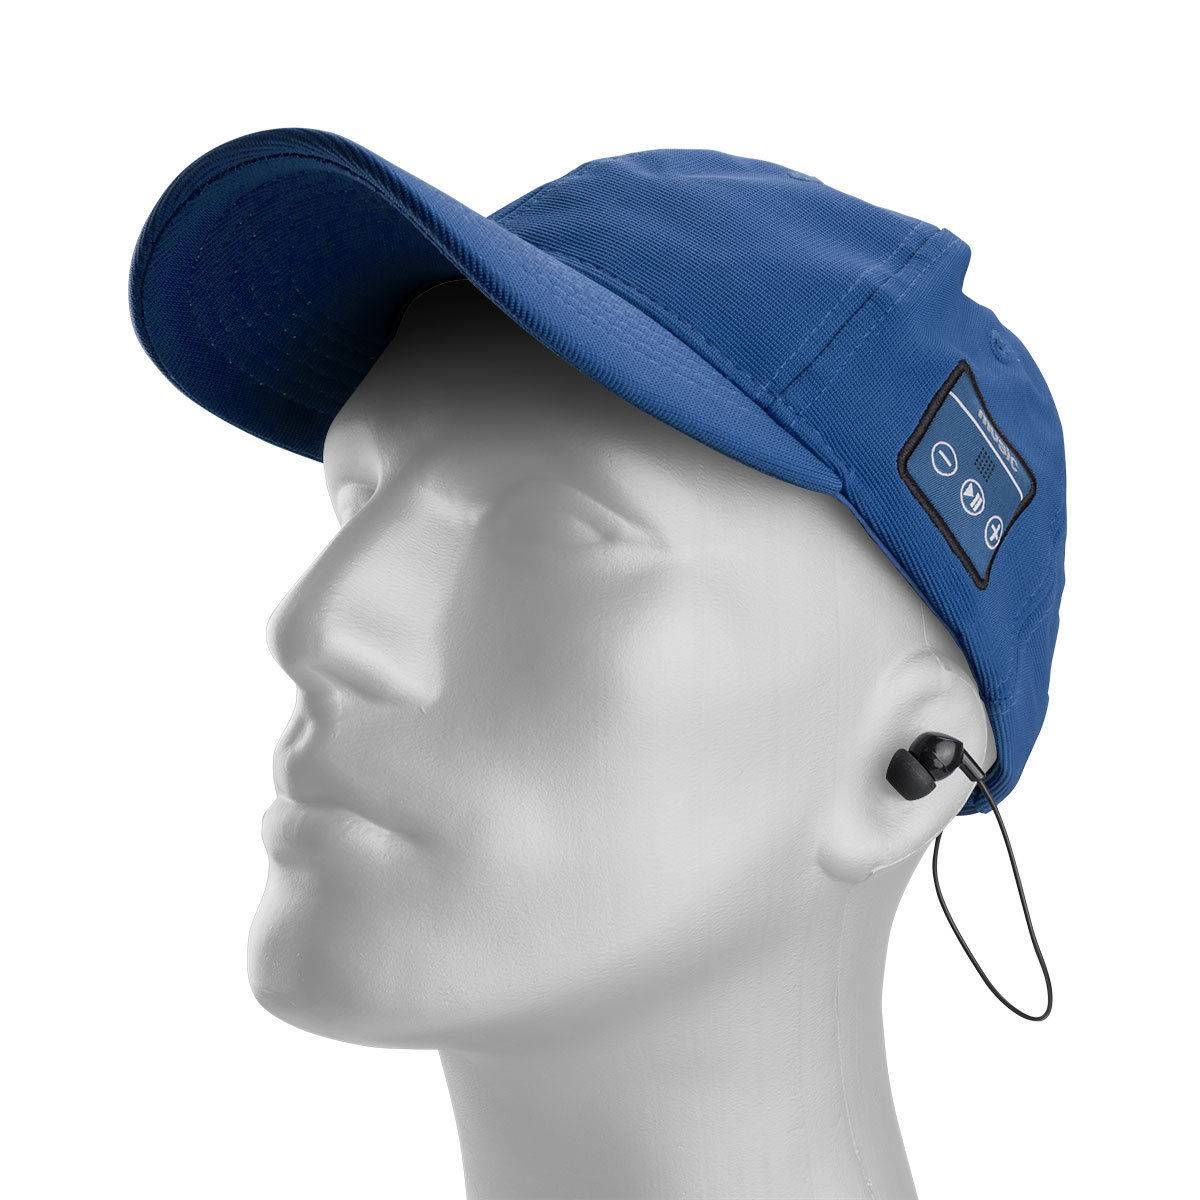 Voltix Bluetooth GrooveCap with Wireless Earbuds - Listen to Music and Answer Calls